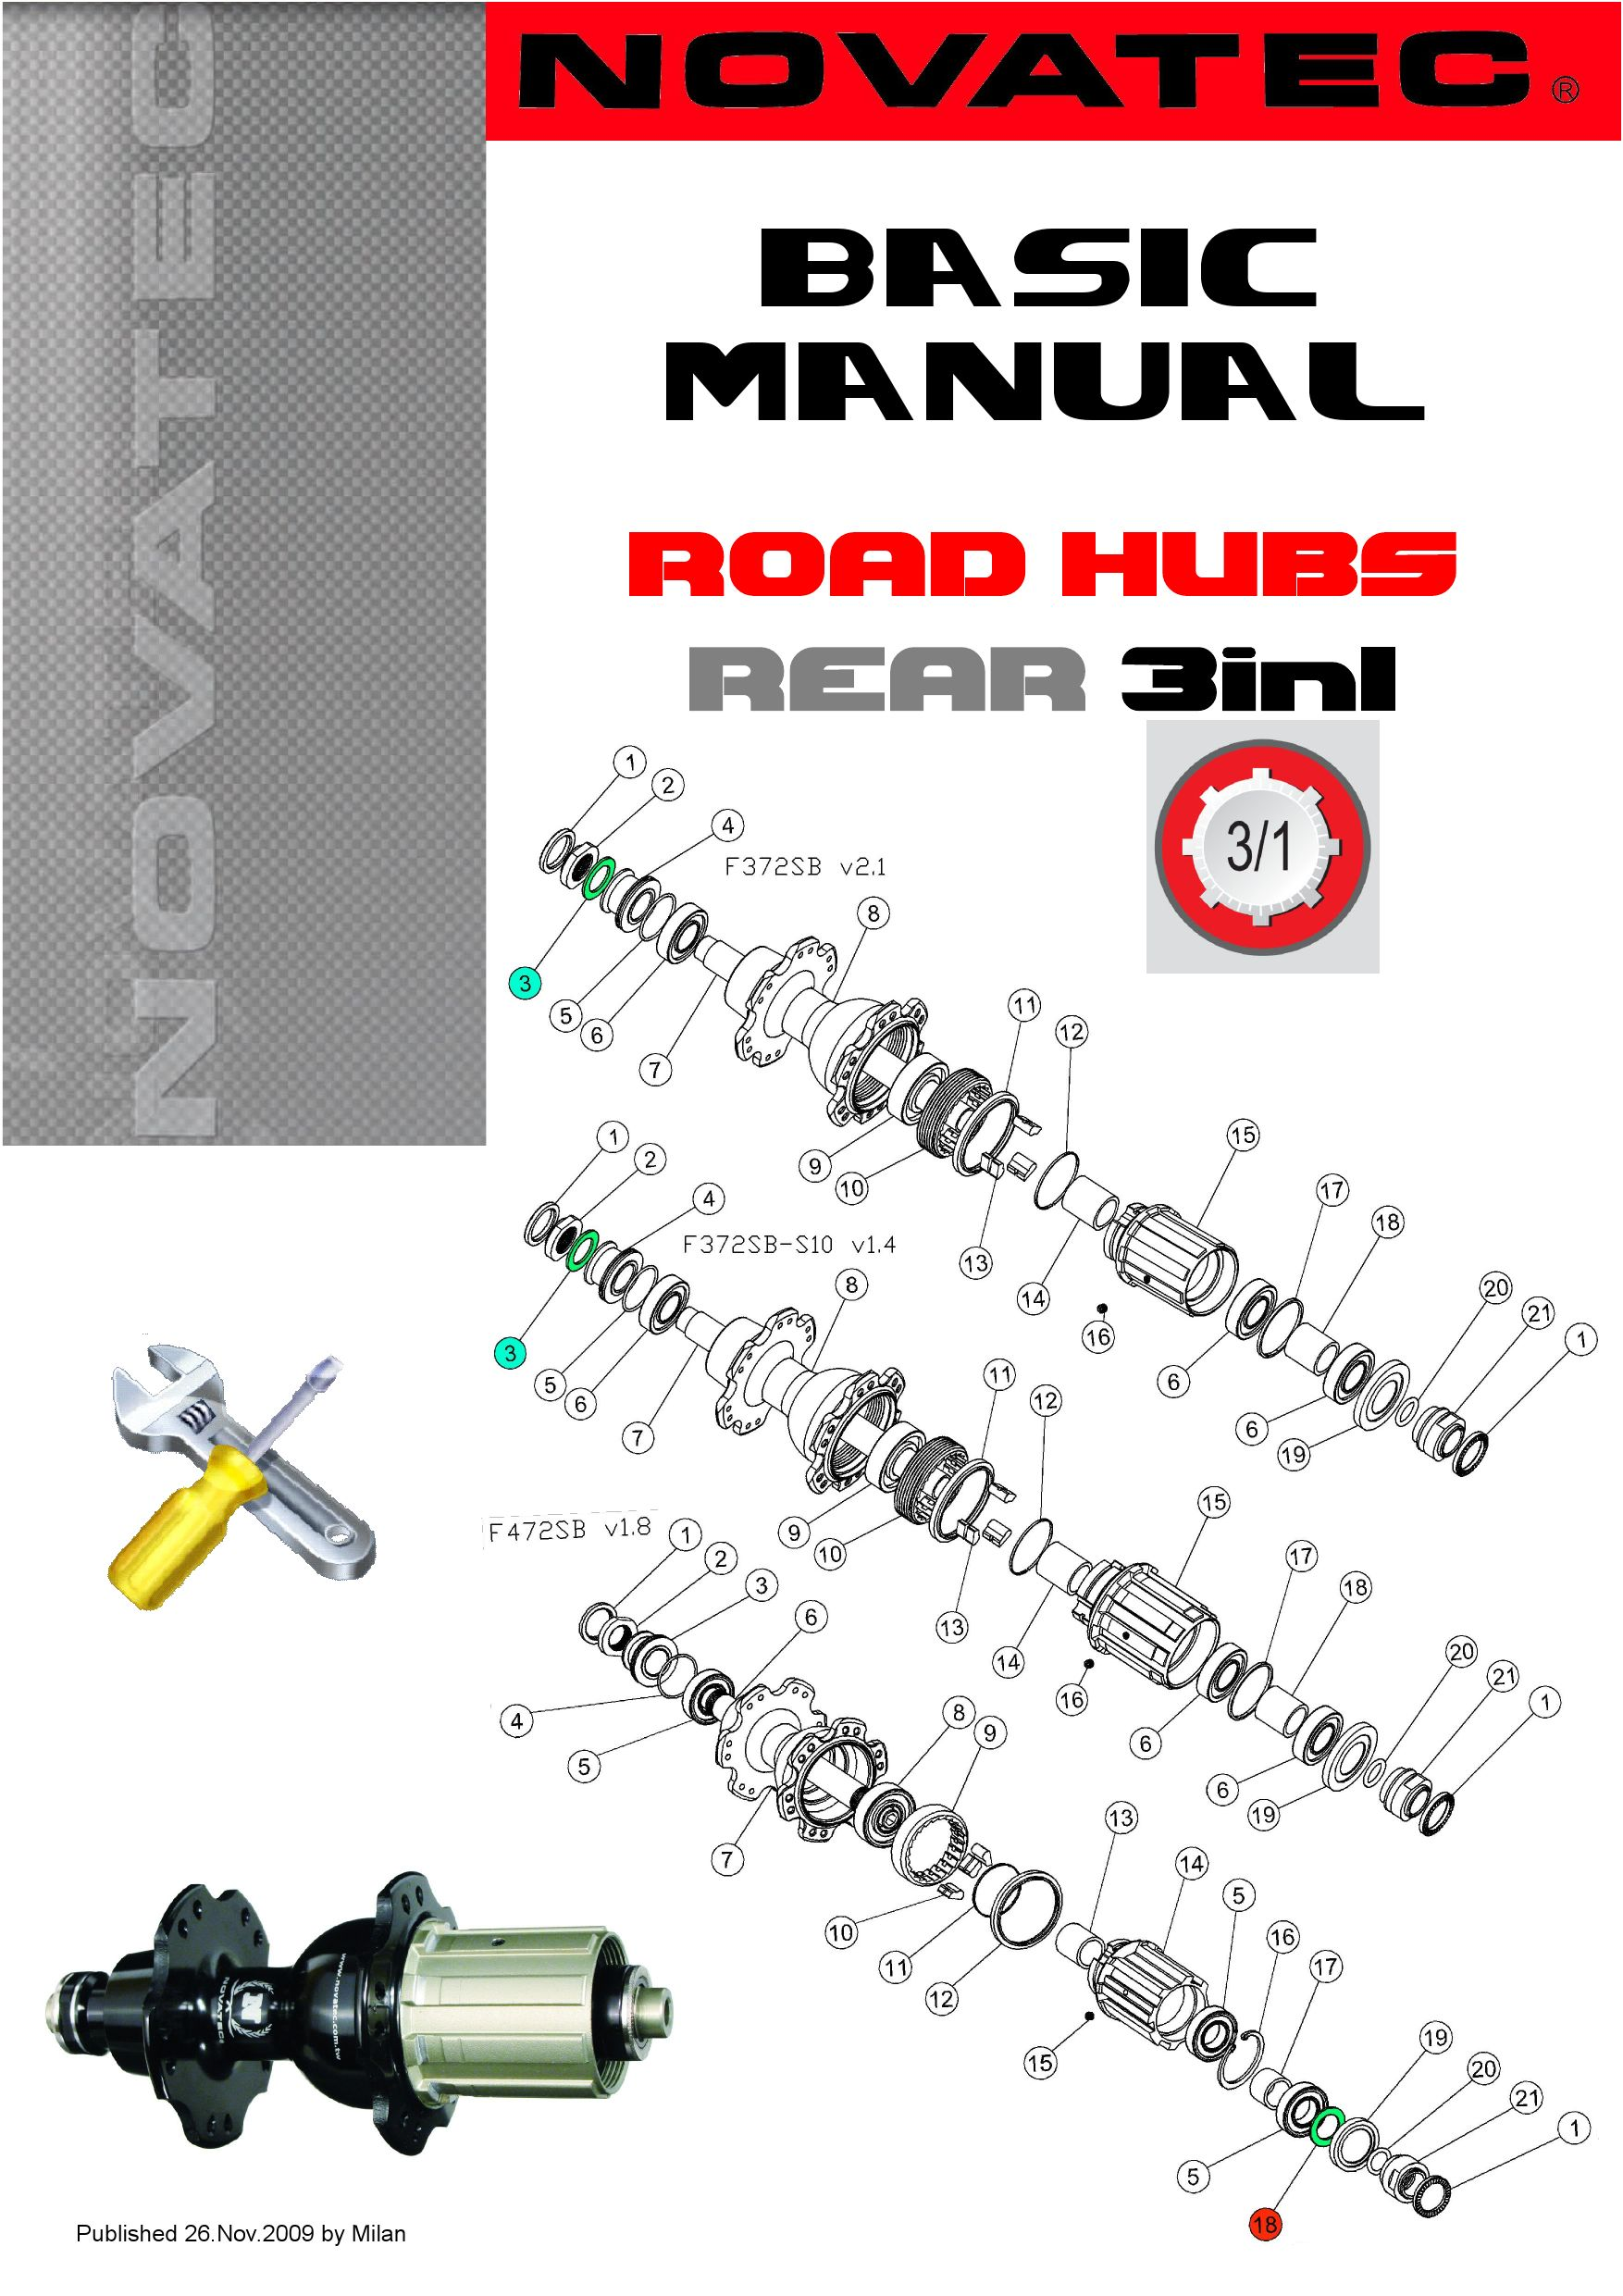 novatec basic manual road rear 3in1 hubs by novatec issuu rh issuu com conmet hub service manual mares hub service manual